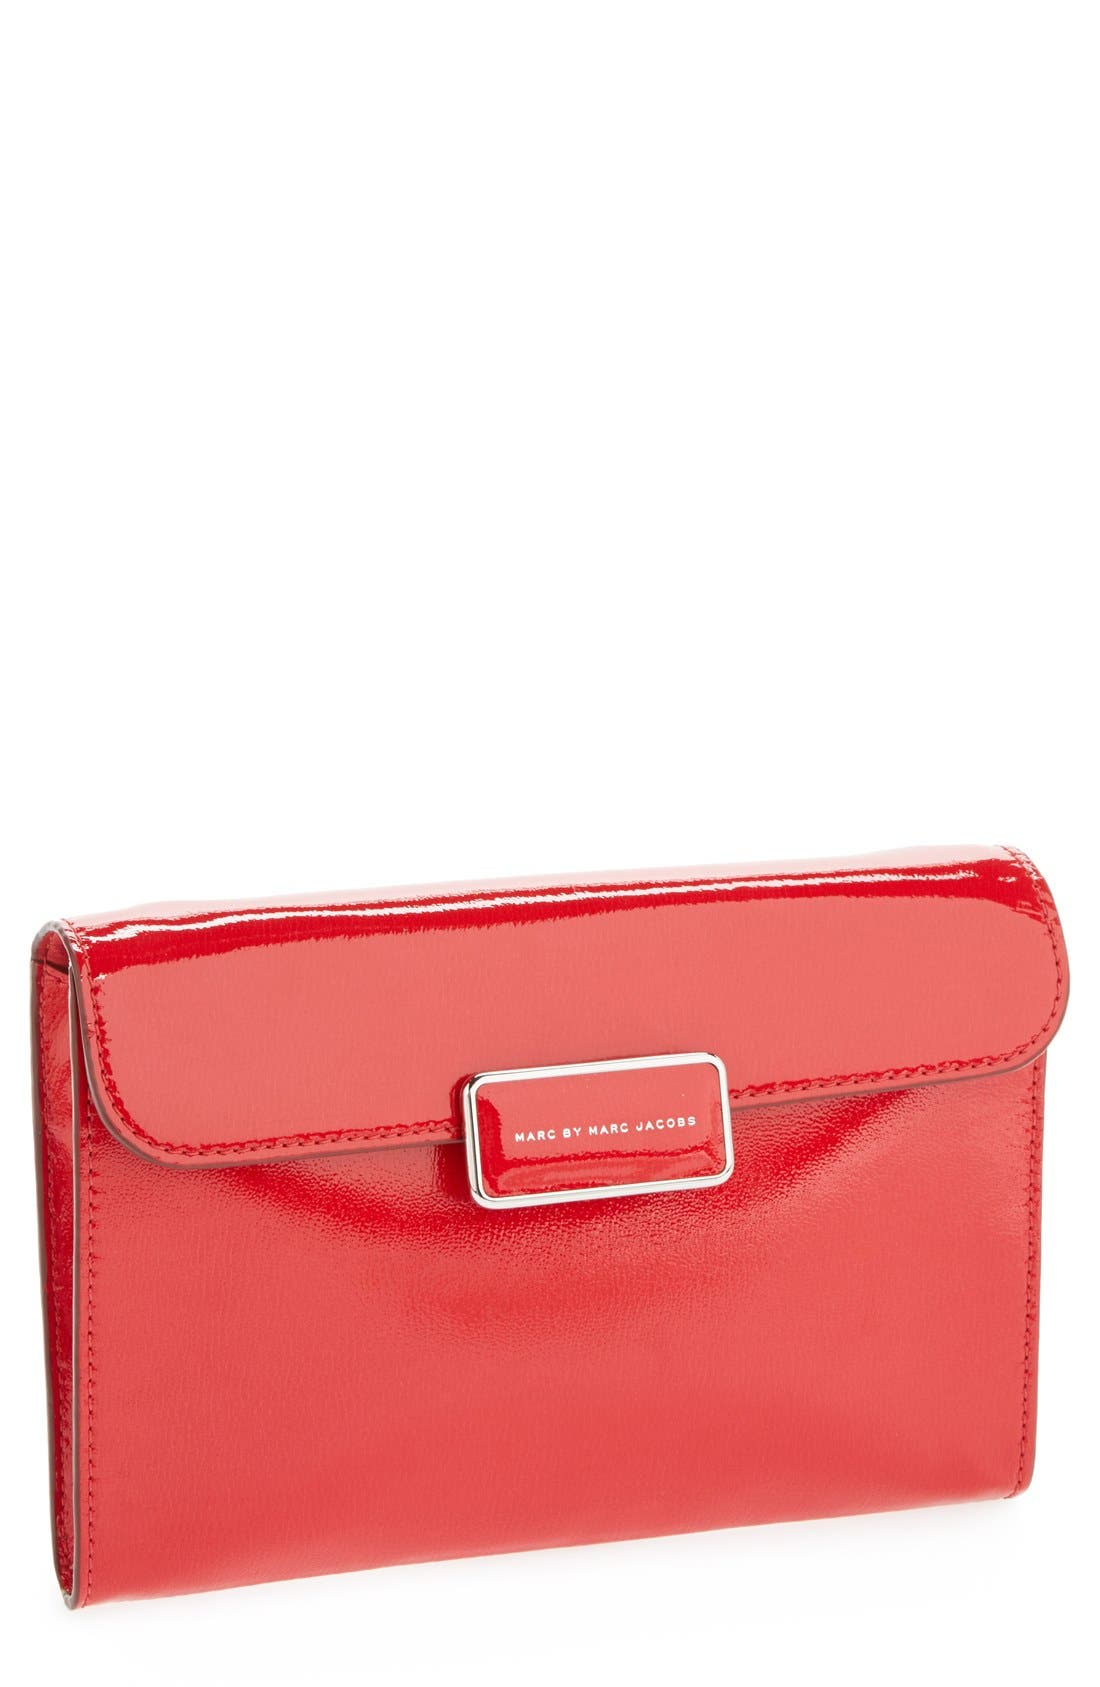 Main Image - MARC BY MARC JACOBS 'Pegg' Patent Leather Clutch